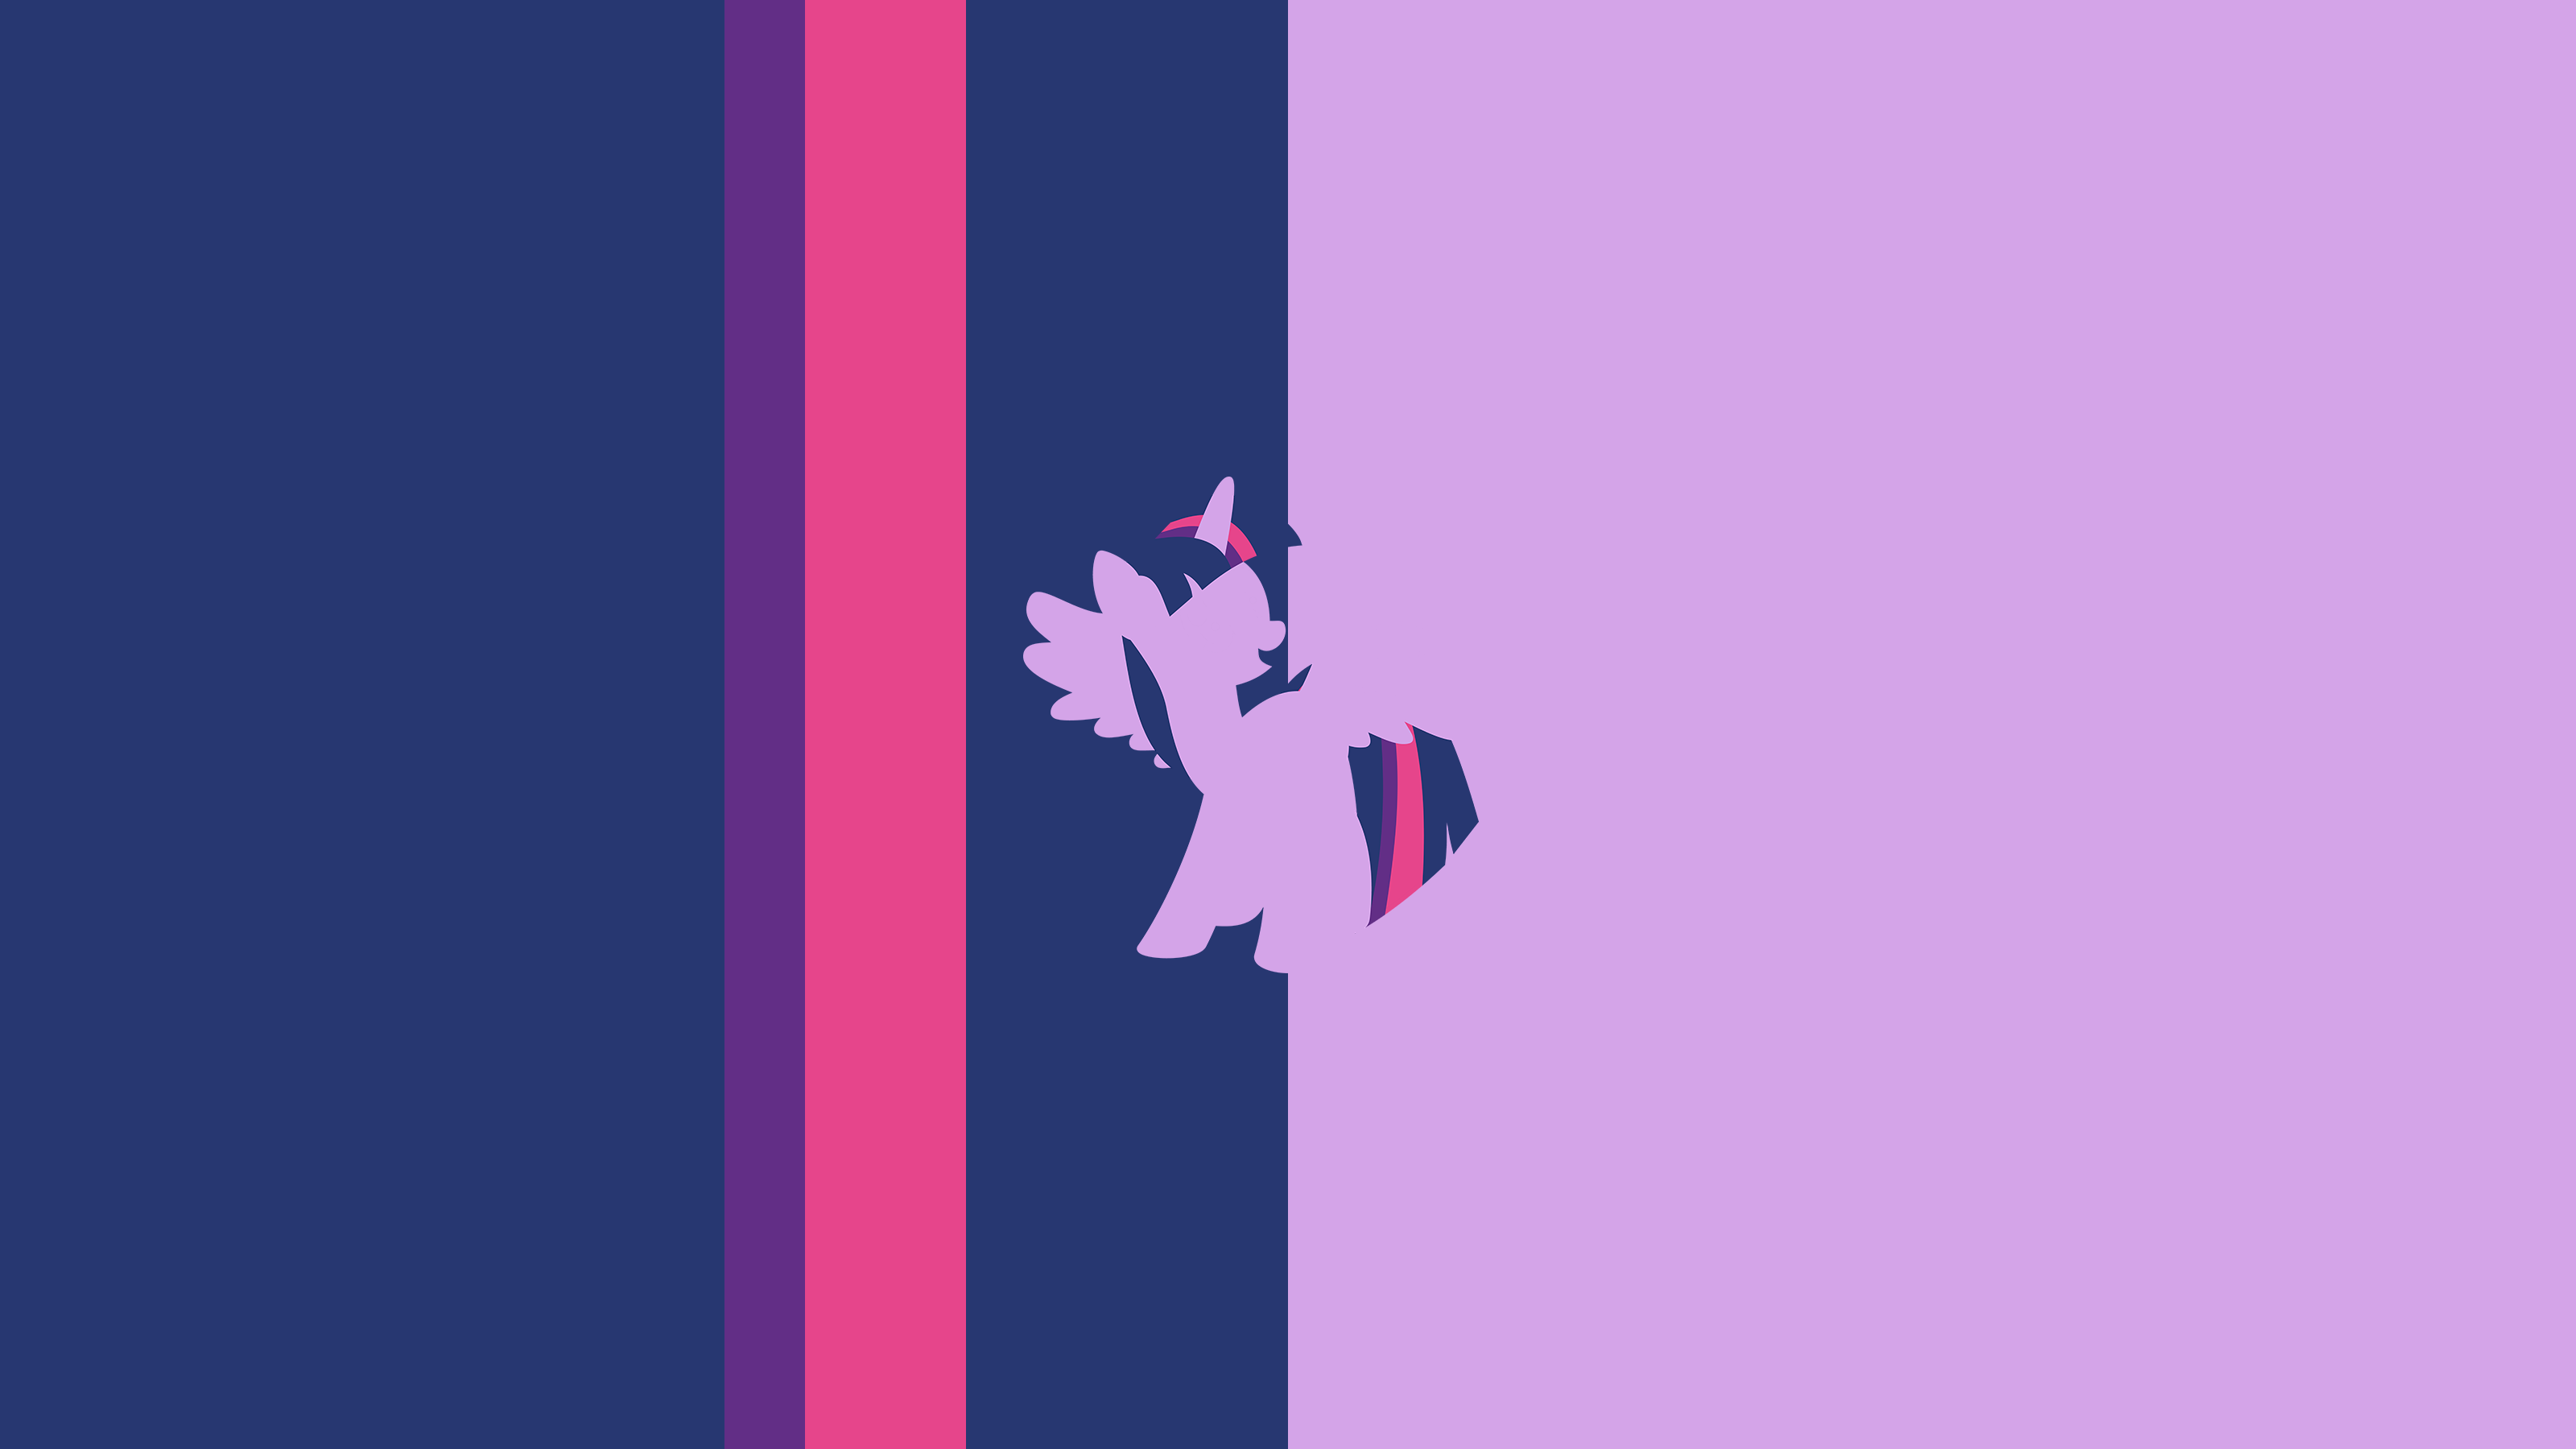 Twilight sparkle split minimal wallpaper by ceruleandraw for Minimal art reddit